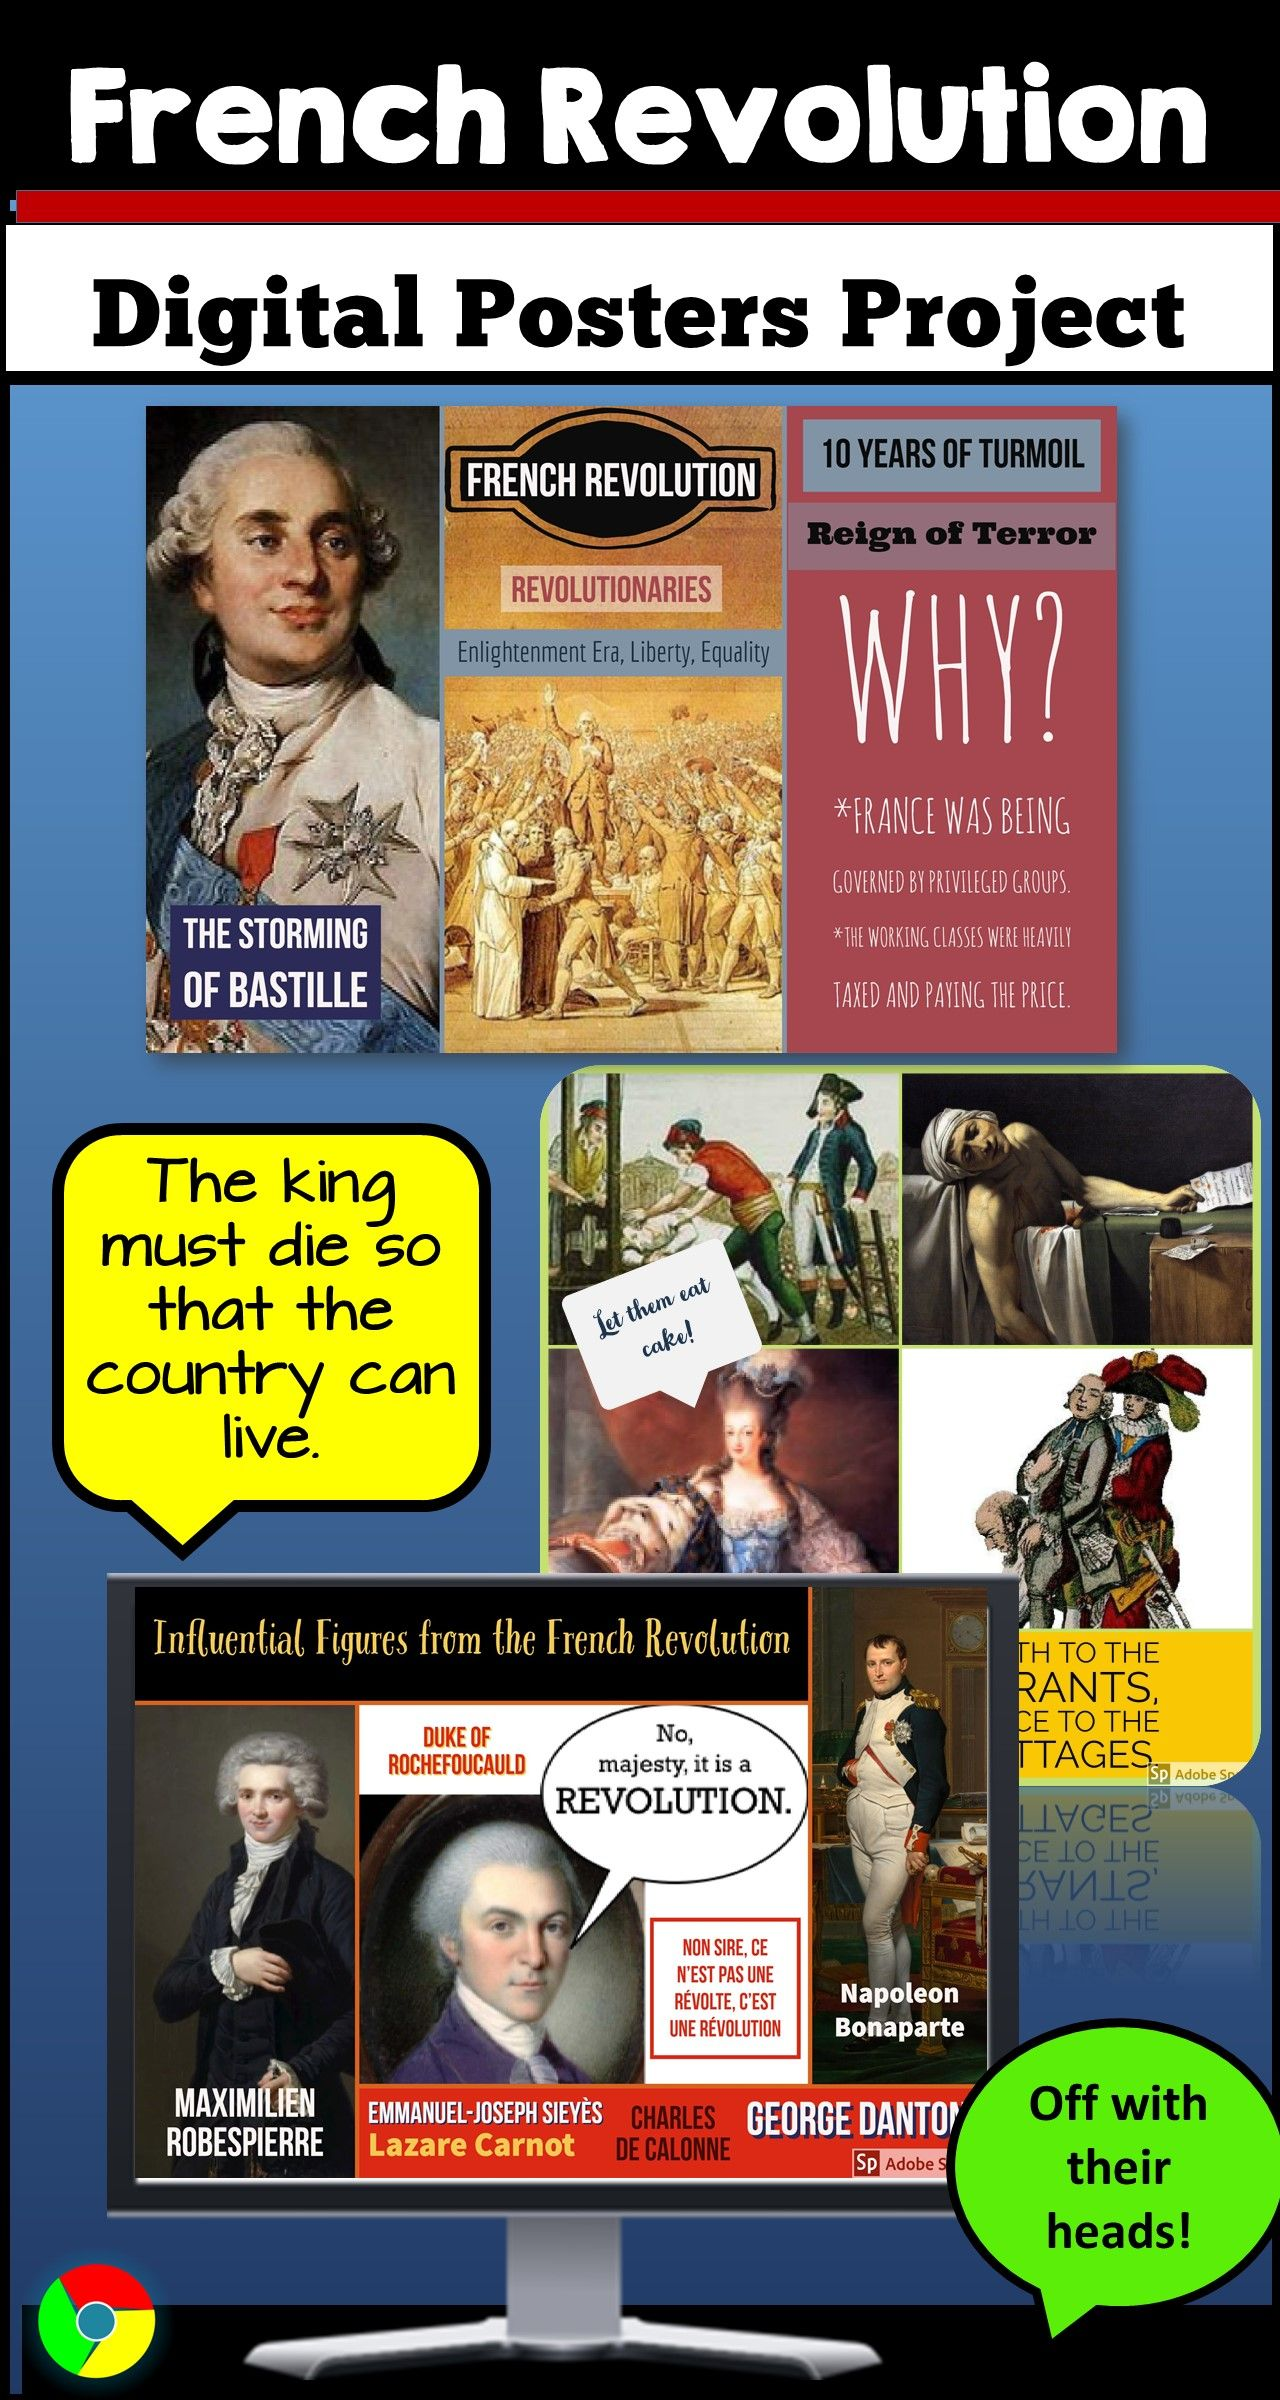 French Revolution: Digital Posters Project - Key Events and ...